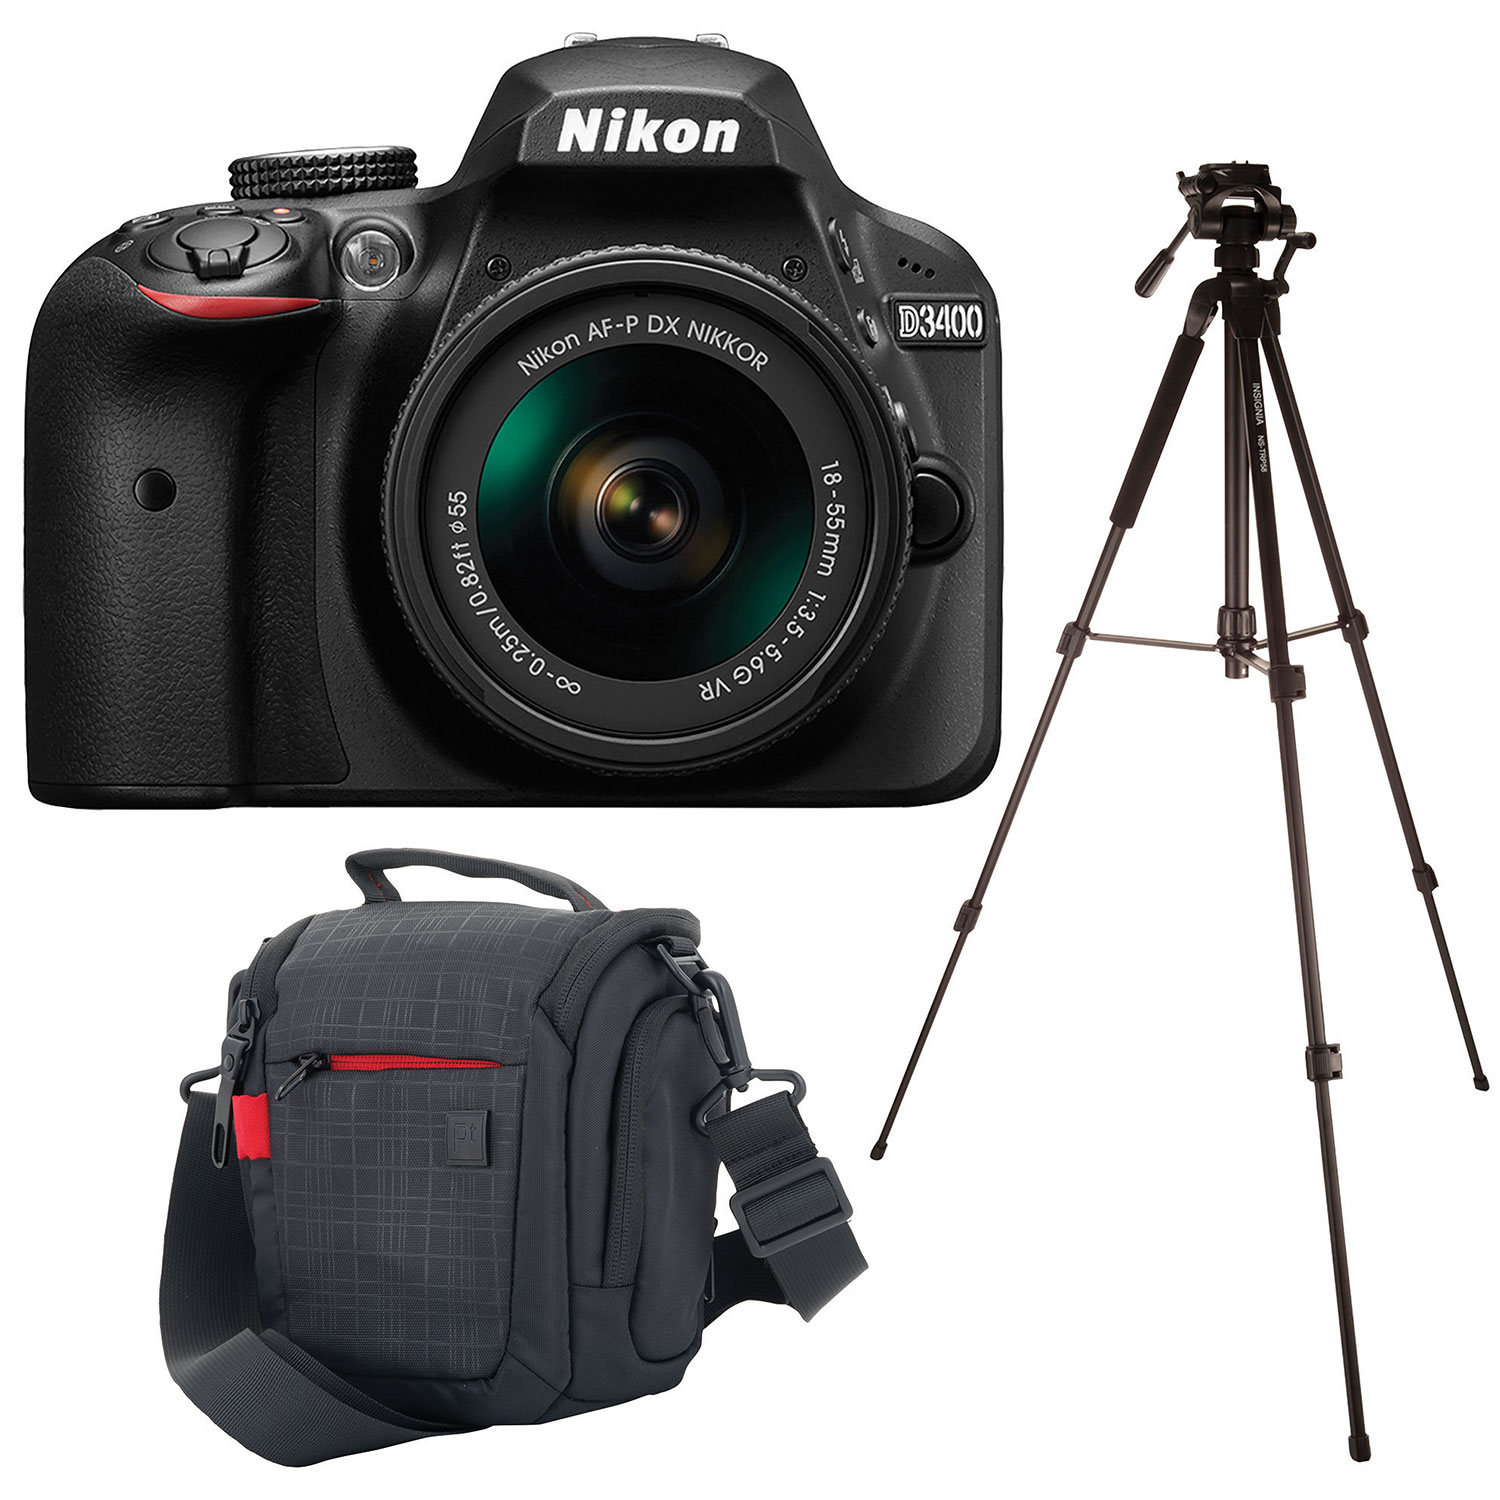 Camera Best Dslr Camera Company best digital slr cameras canon nikon dslr buy canada d3400 camera with 18 55mm vr lens kit platinum bag and